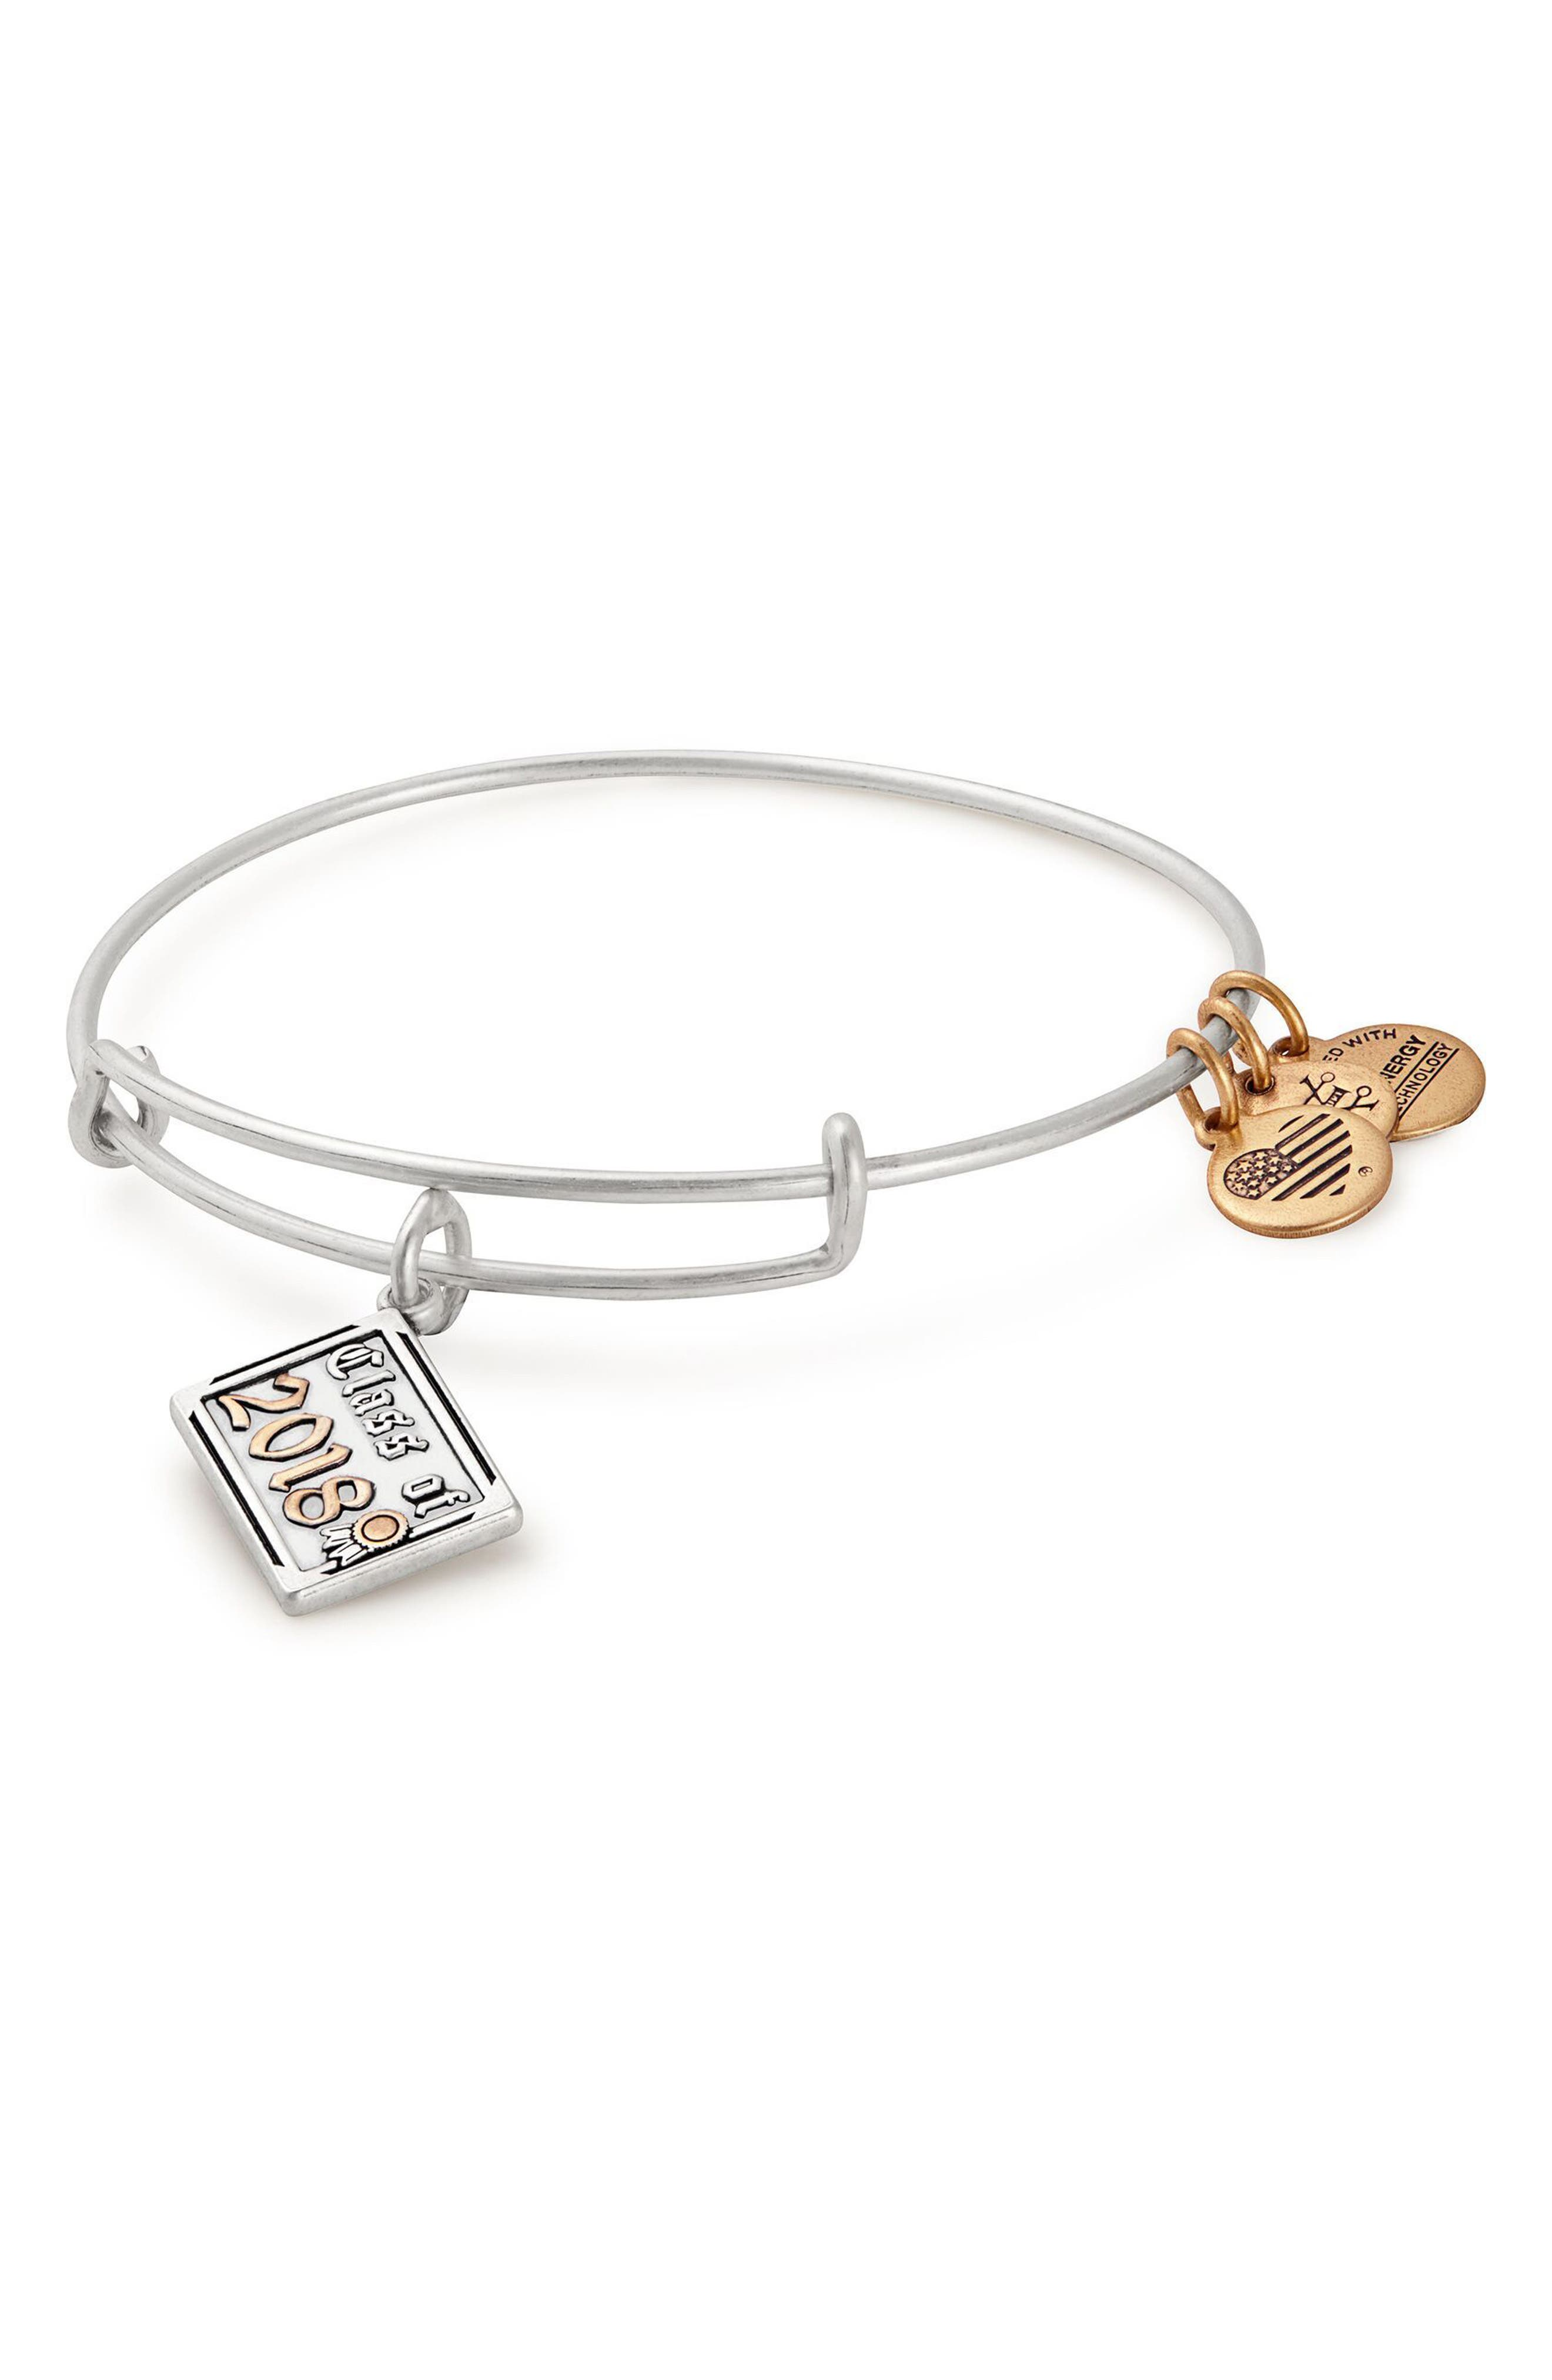 Class of 2018 Charm Bangle,                             Main thumbnail 1, color,                             Silver